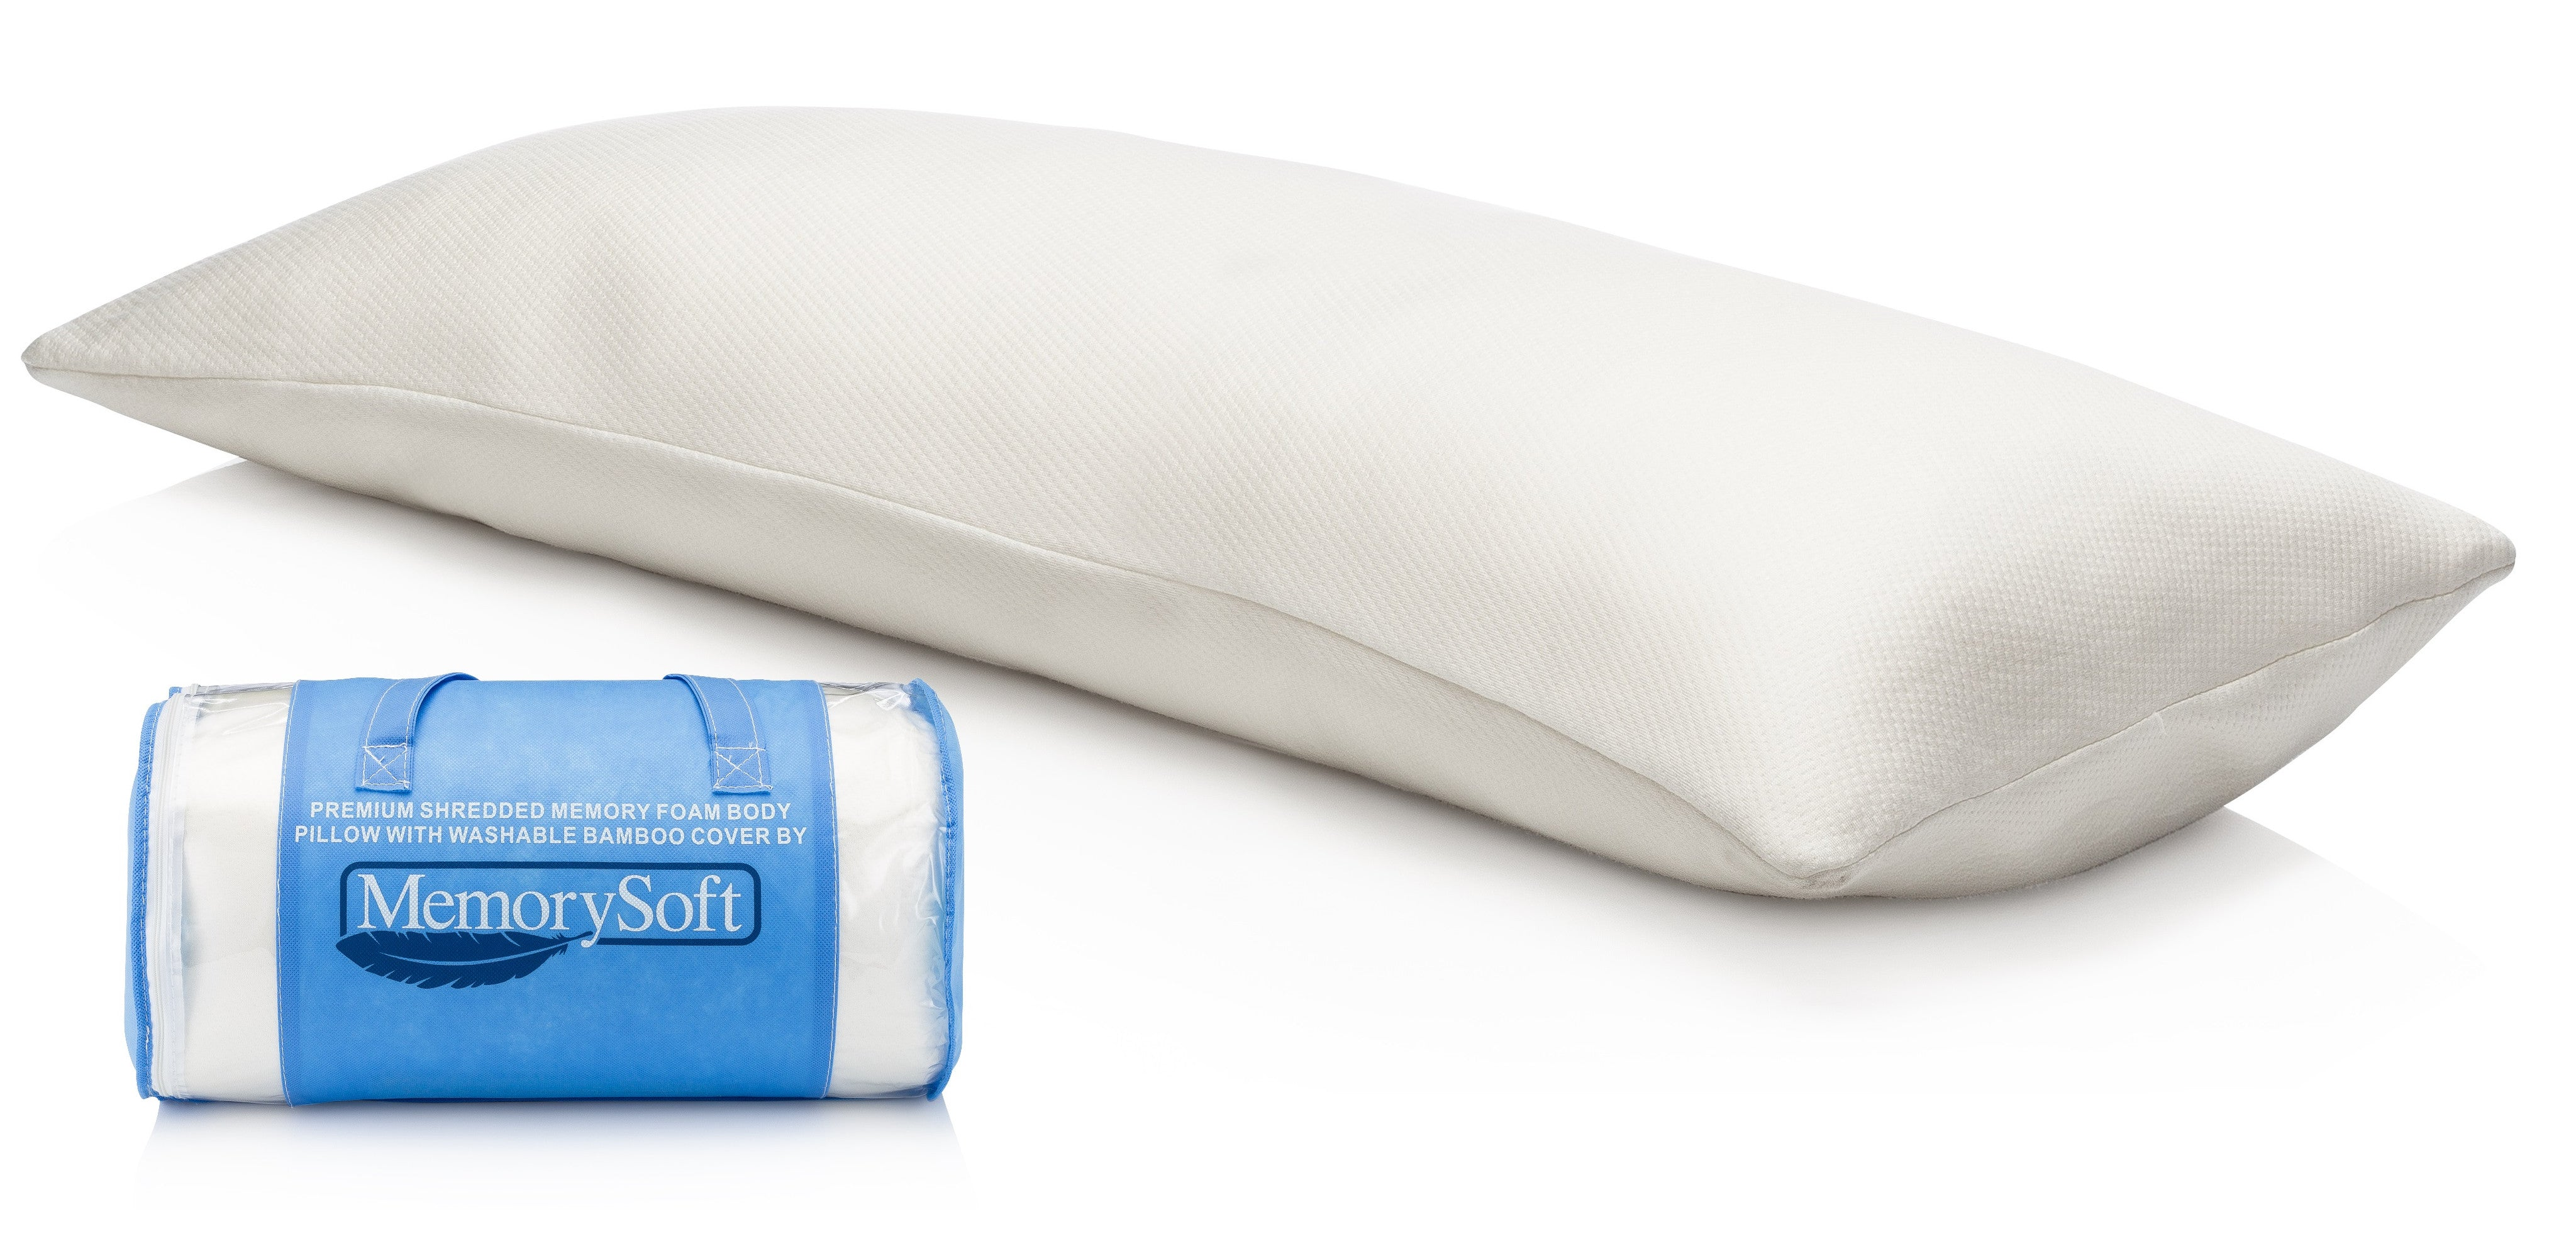 innovations from gallery tempur cushion blanket foam embrace kitchen memory amazoncom pillow body sleep home